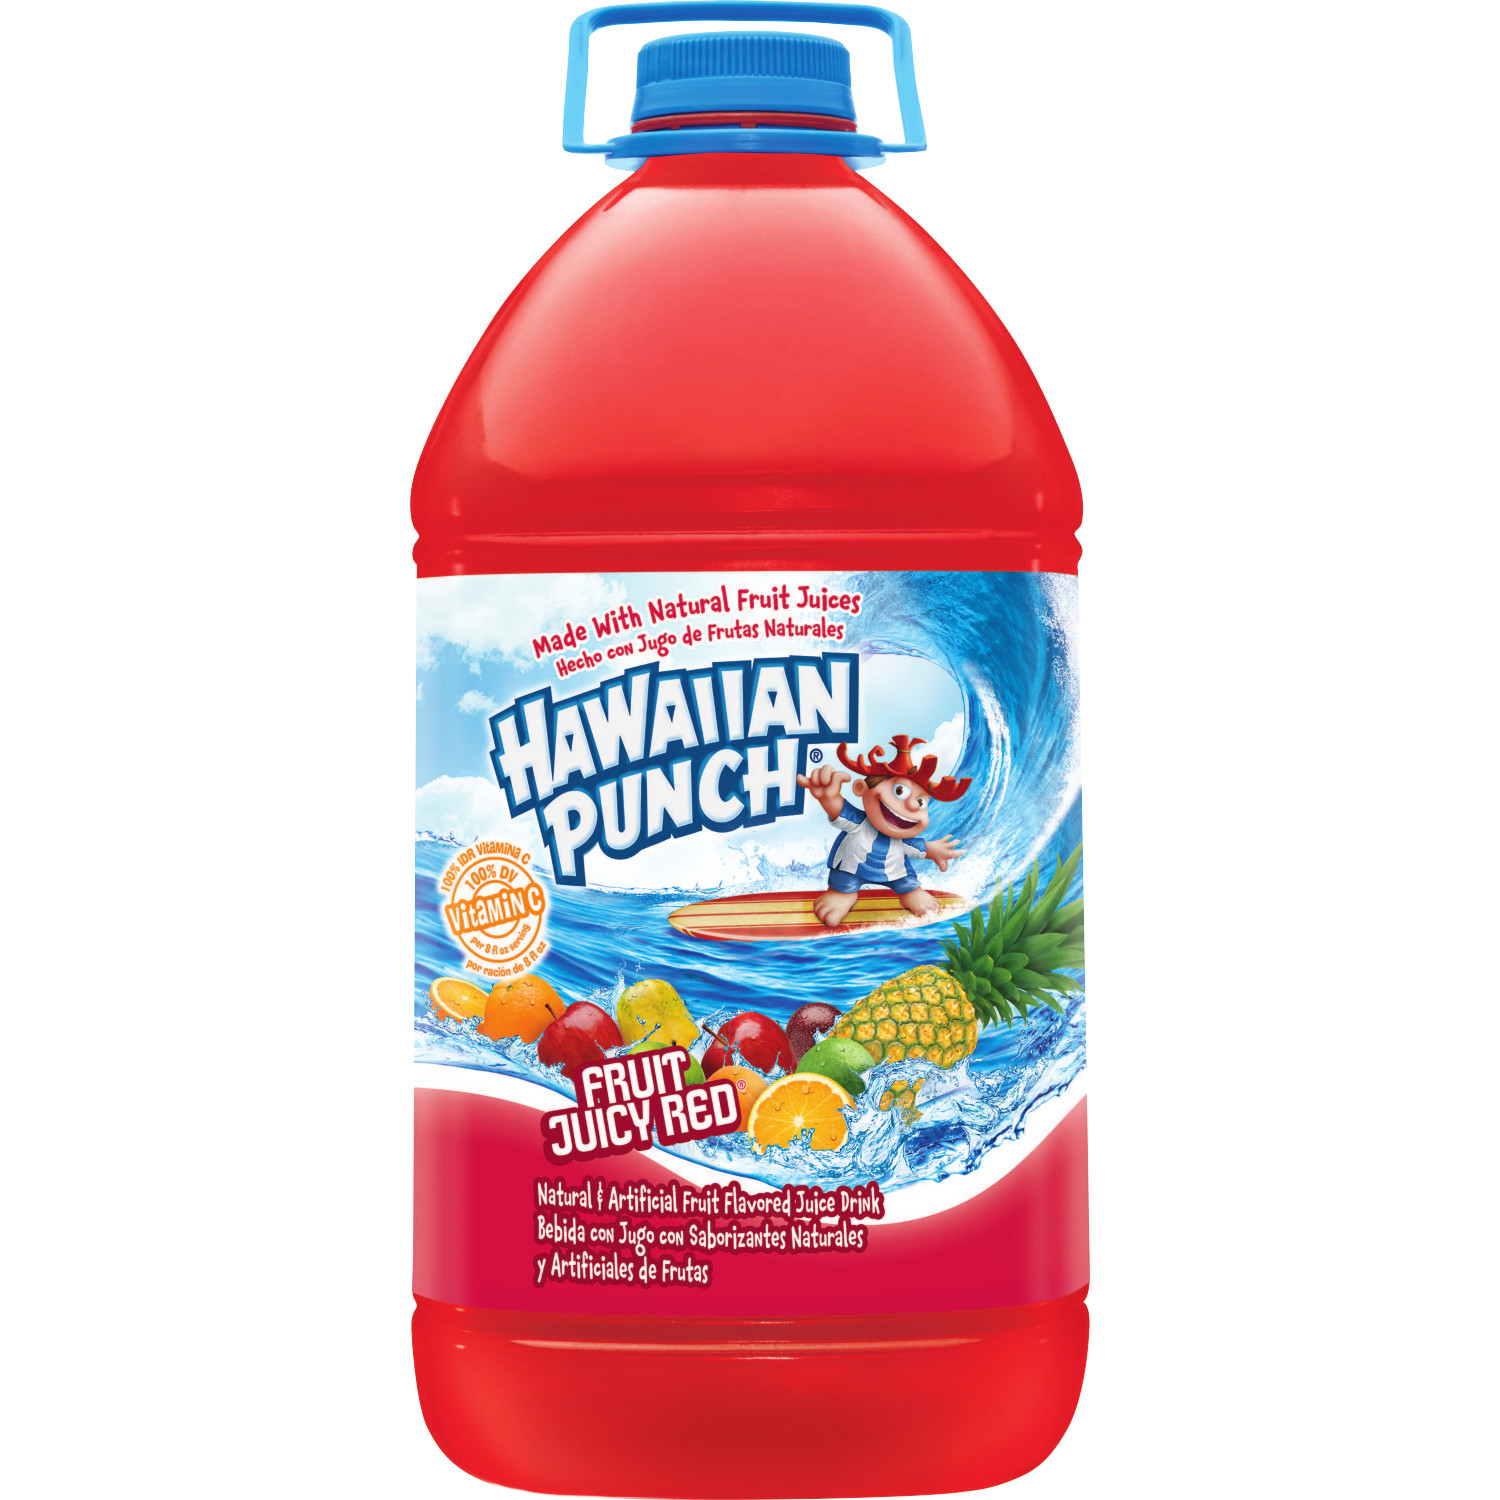 Hawaiian Punch Fruit Juicy Red, Fruit Punch Juice Drink, 1 gal bottle